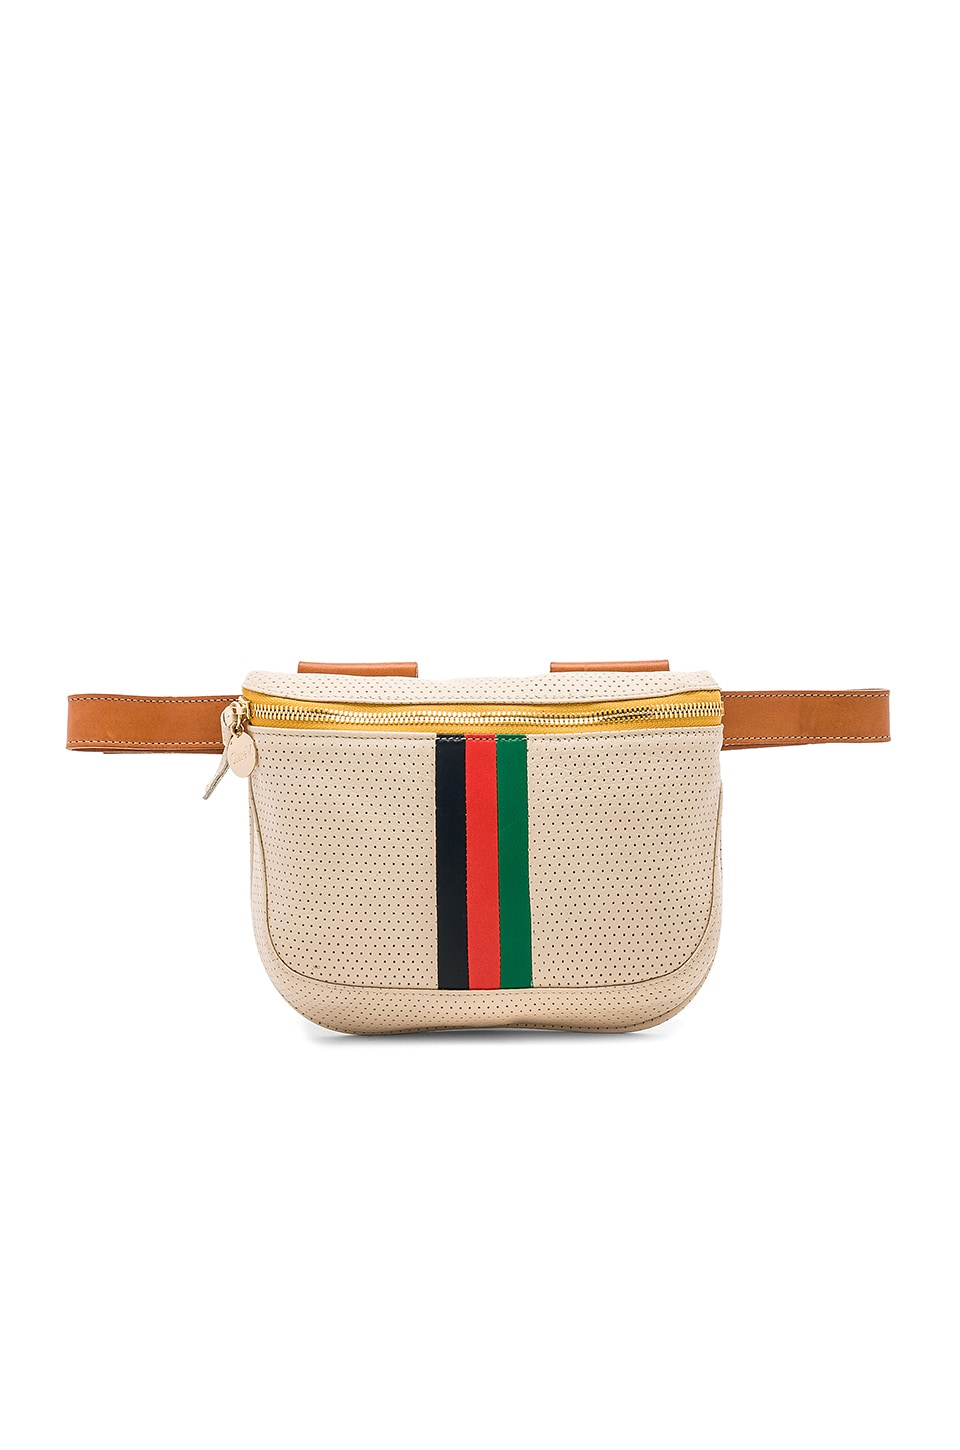 Clare V. Fanny Pack Desert Stripe in Cream Micro Perforated Stripes